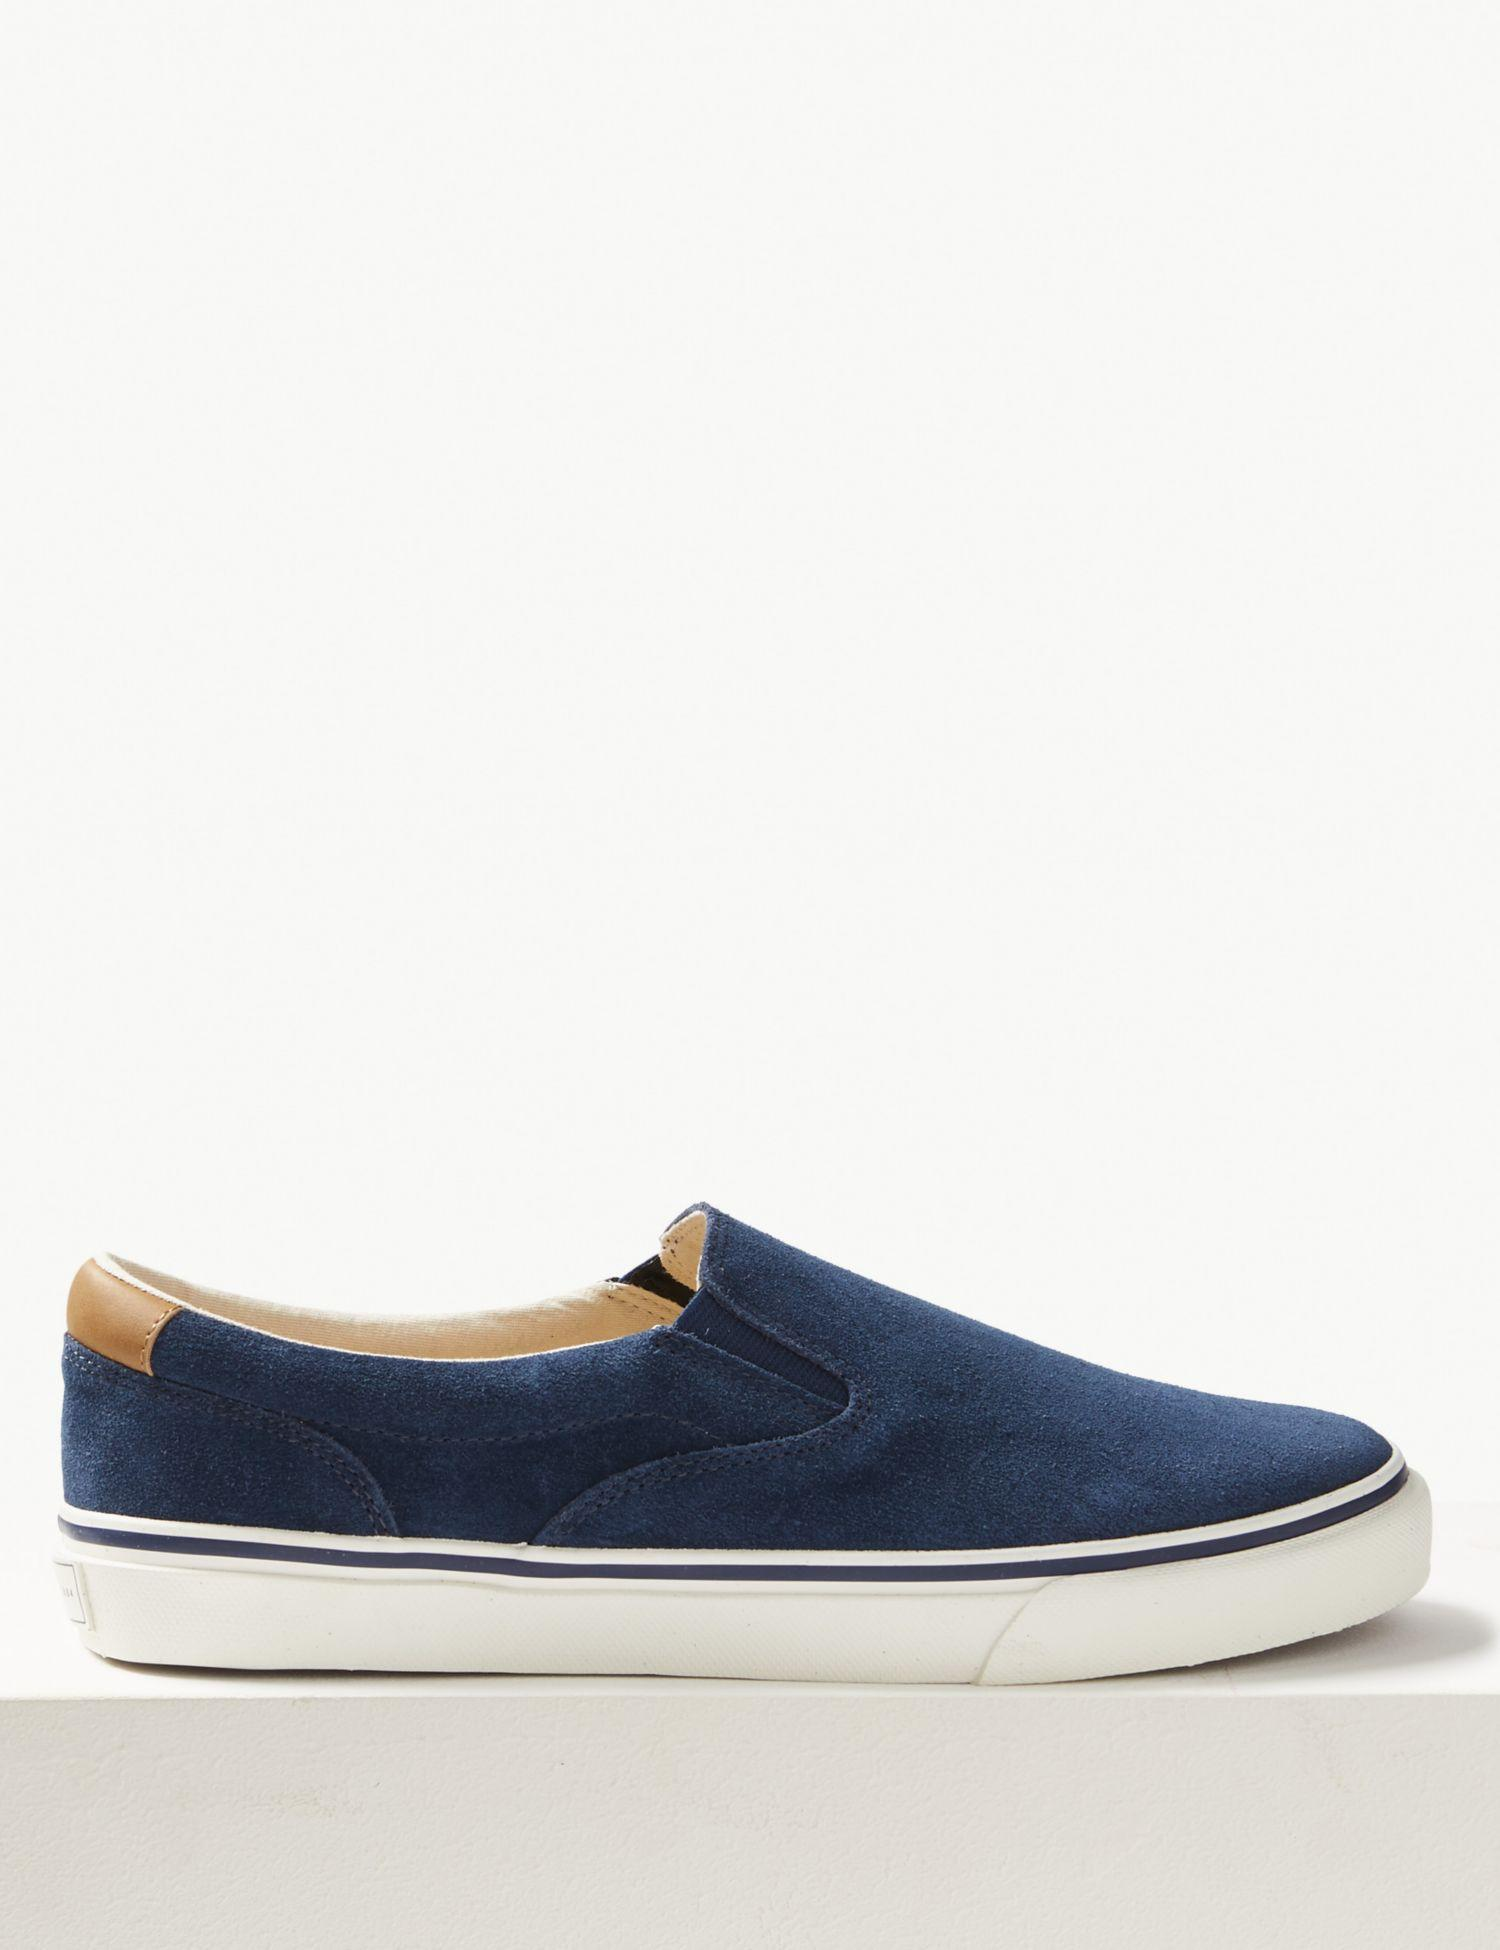 04044632f14 Marks   Spencer Wide Fit Suede Pump Shoes With Freshfeettm in Blue ...